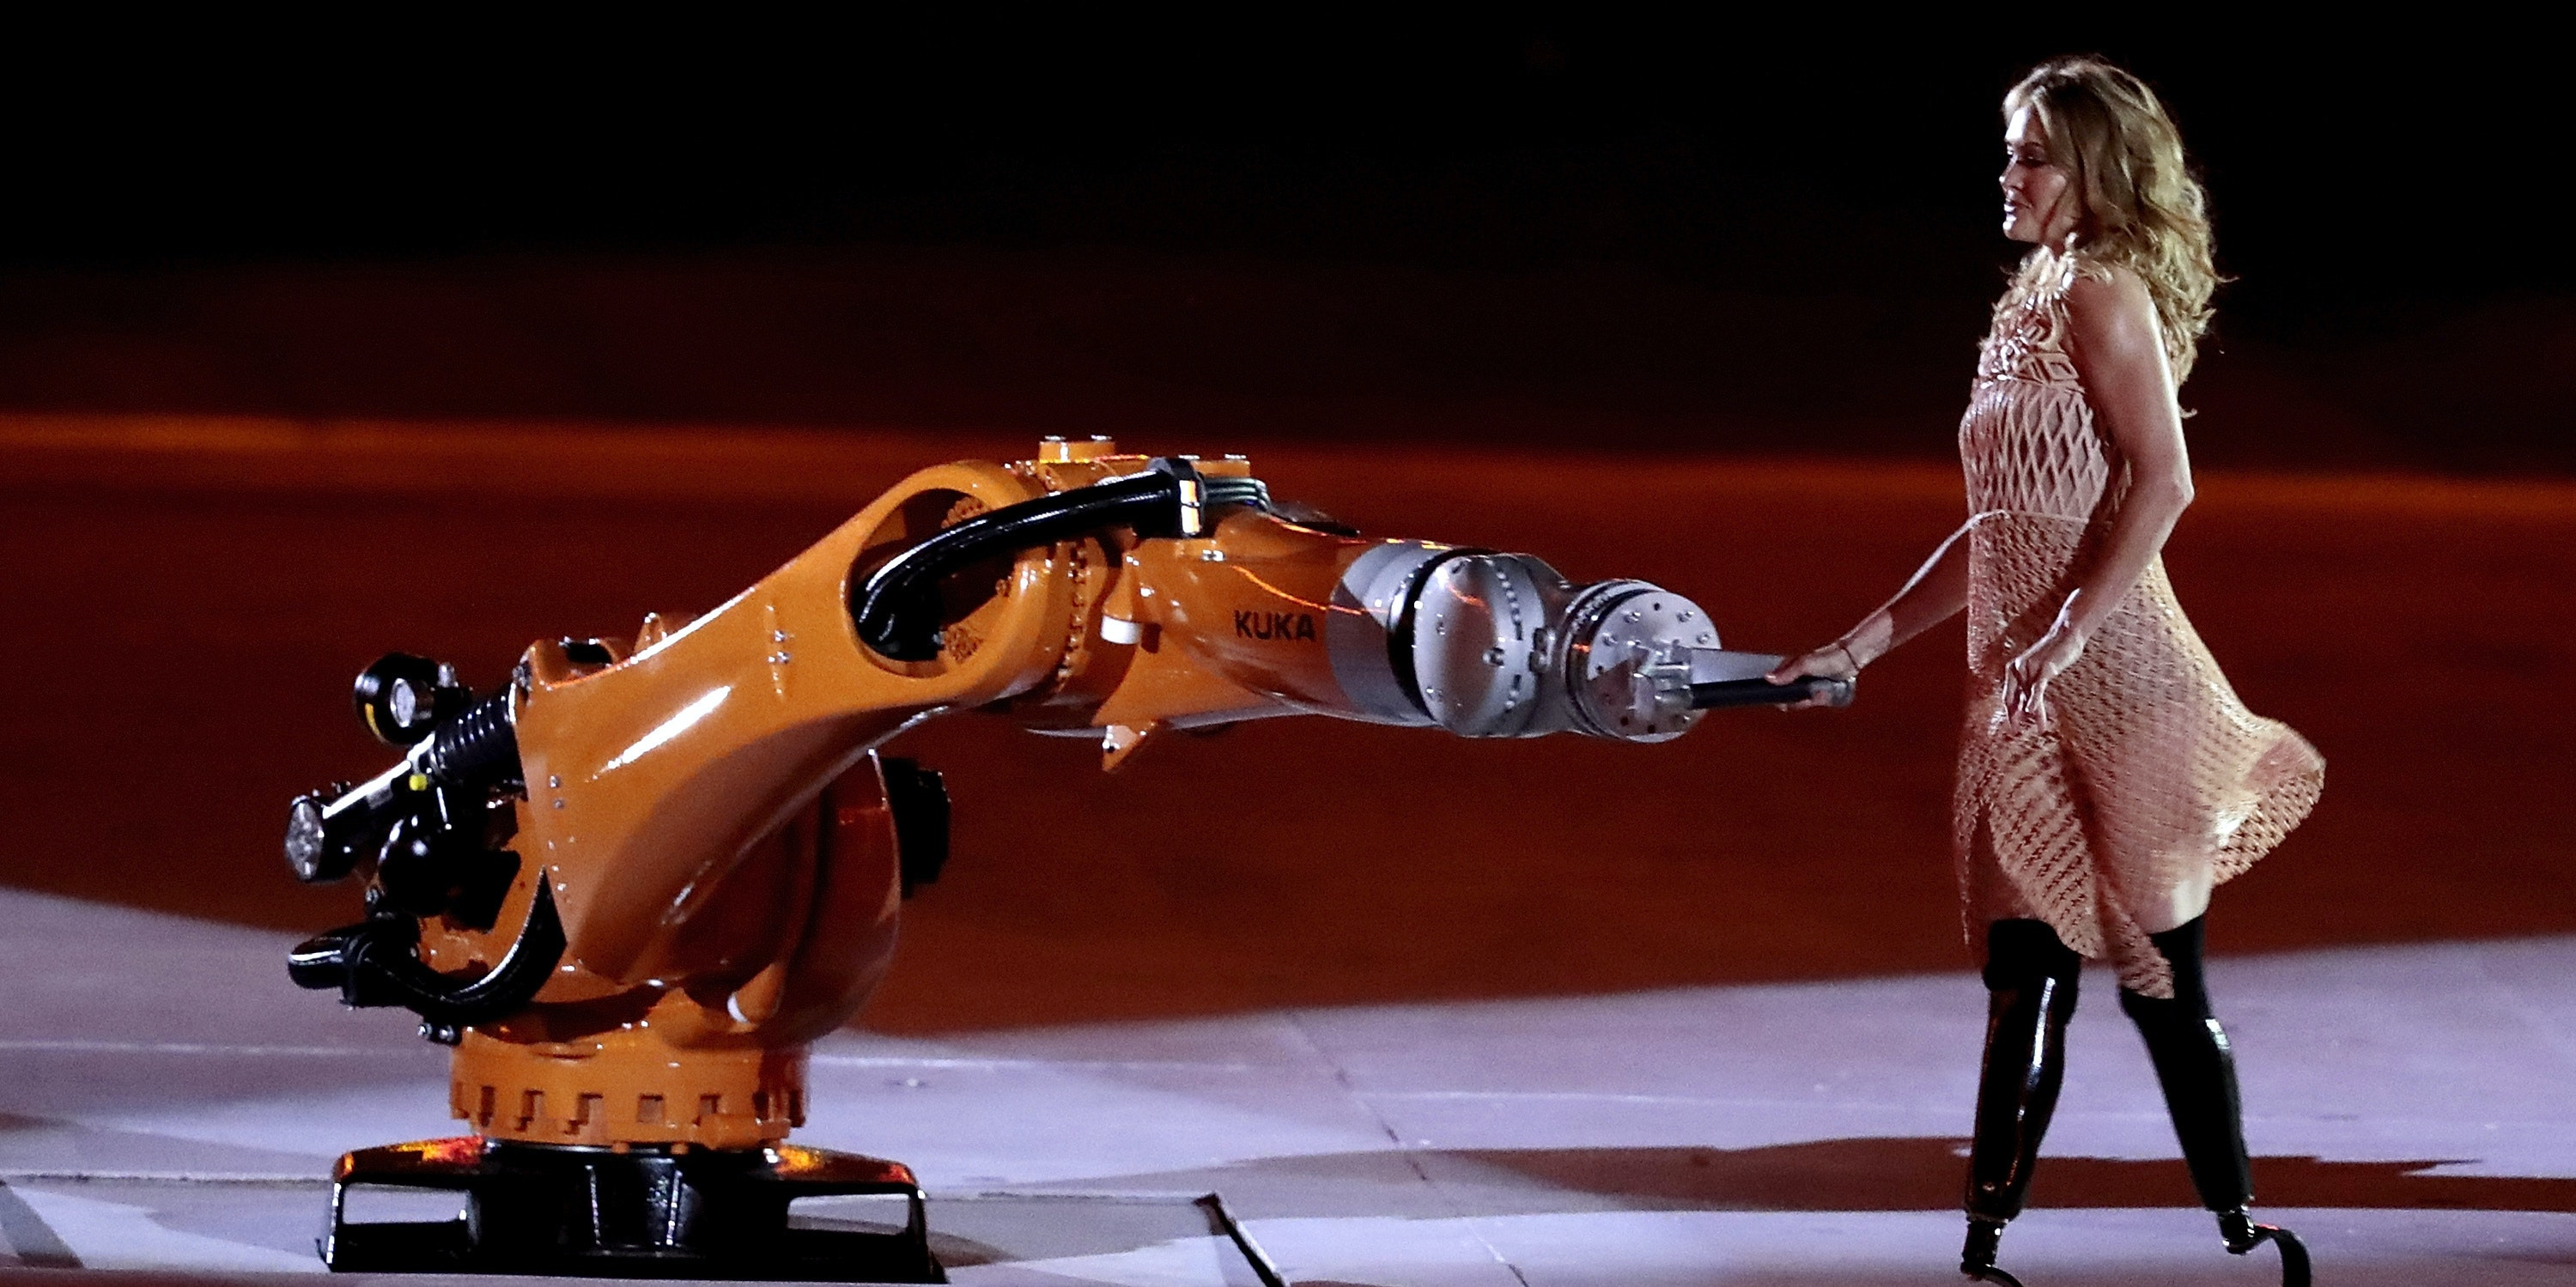 RIO DE JANEIRO, BRAZIL - SEPTEMBER 07: Amy Purdy dances with robot Kuka during the Opening Ceremony of the Rio 2016 Paralympic Games at Maracana Stadium on September 7, 2016 in Rio de Janeiro, Brazil.(Photo by Alexandre Loureiro/Getty Images)